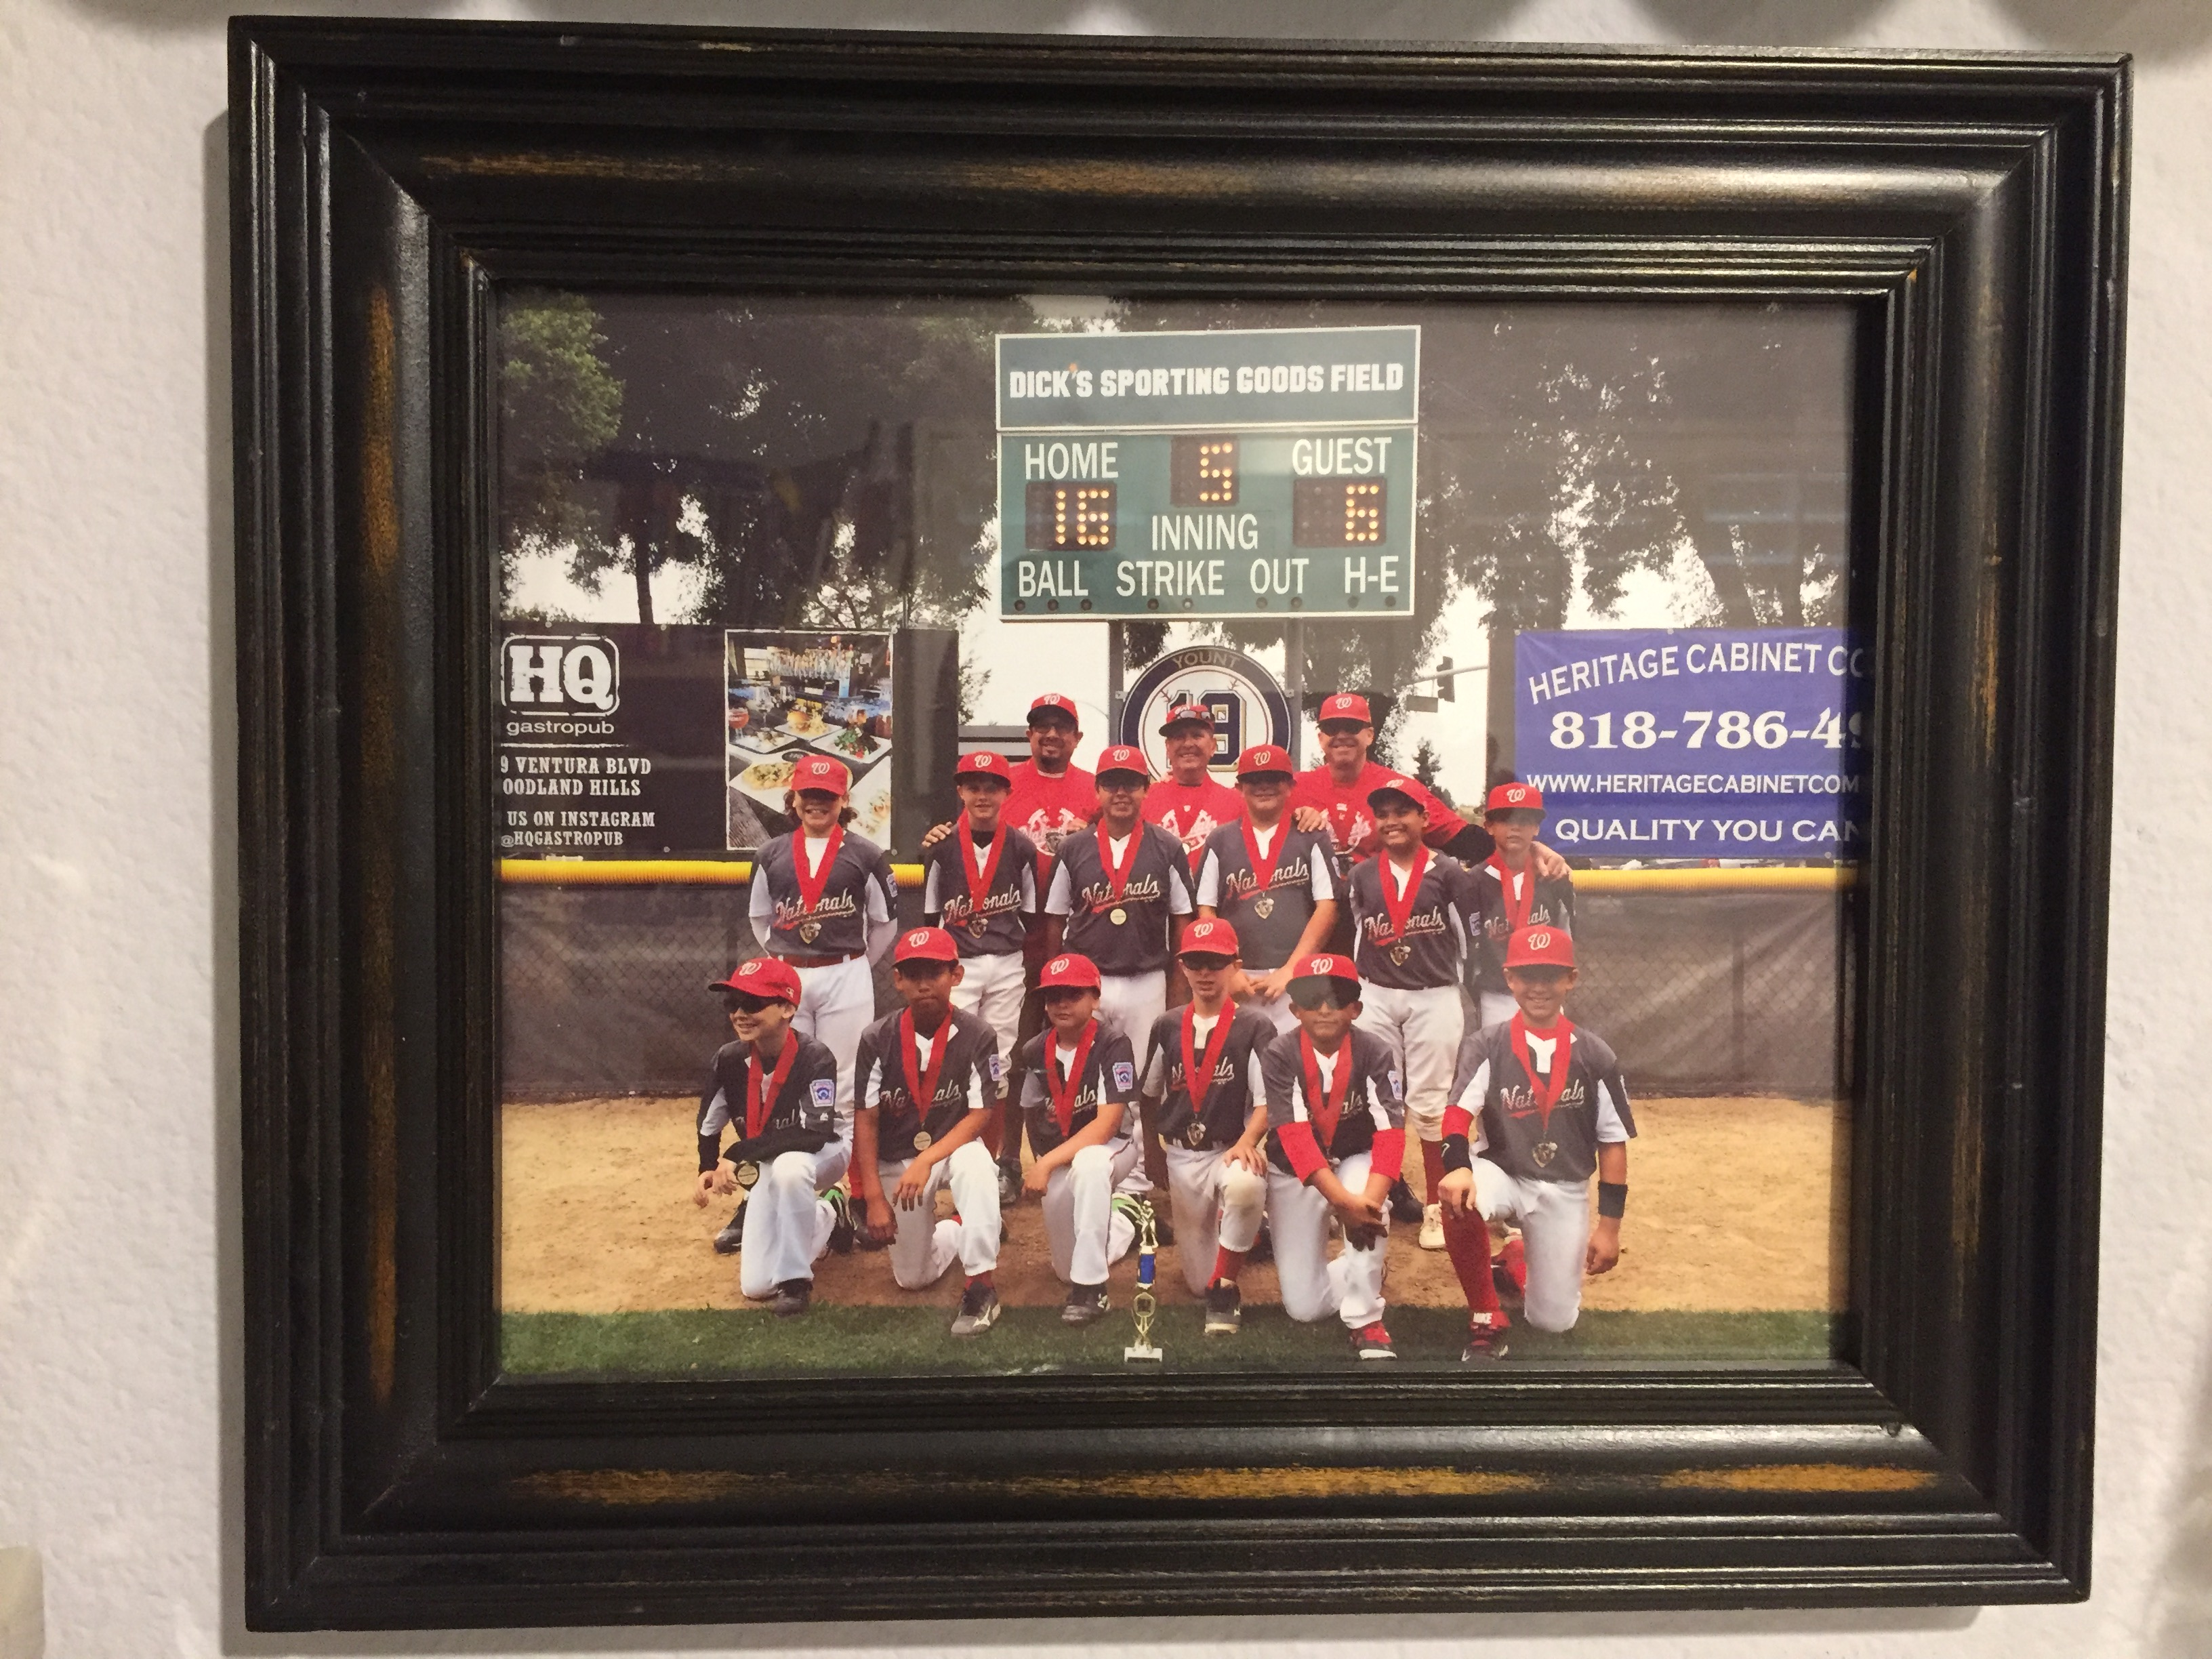 baseball team photo in frame